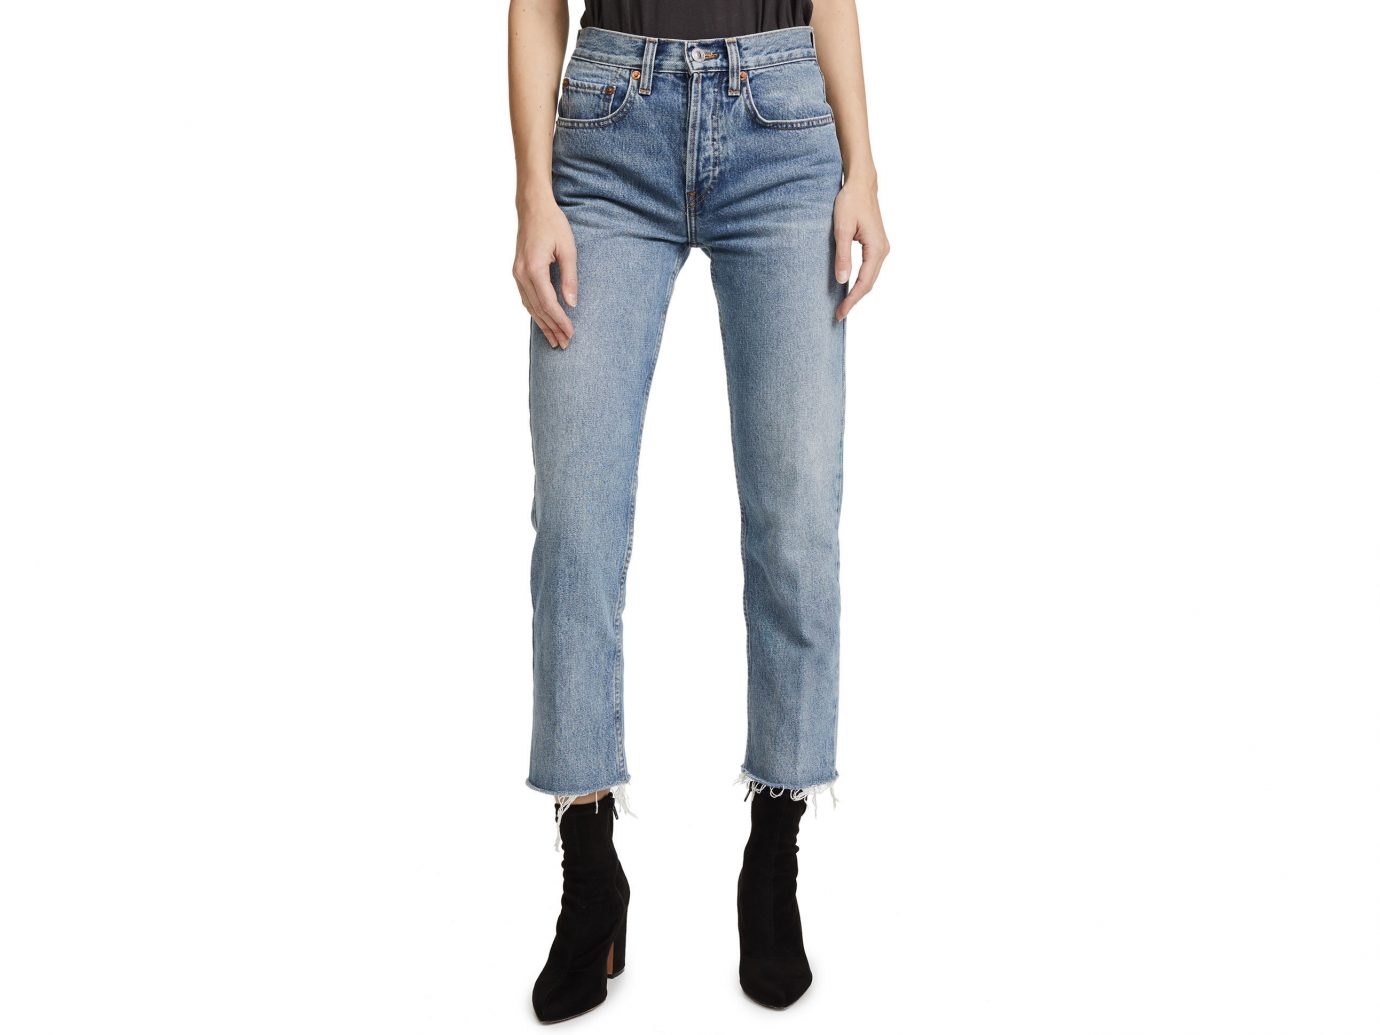 City NYC Style + Design Travel Shop jeans clothing person denim standing trouser trousers waist posing pocket